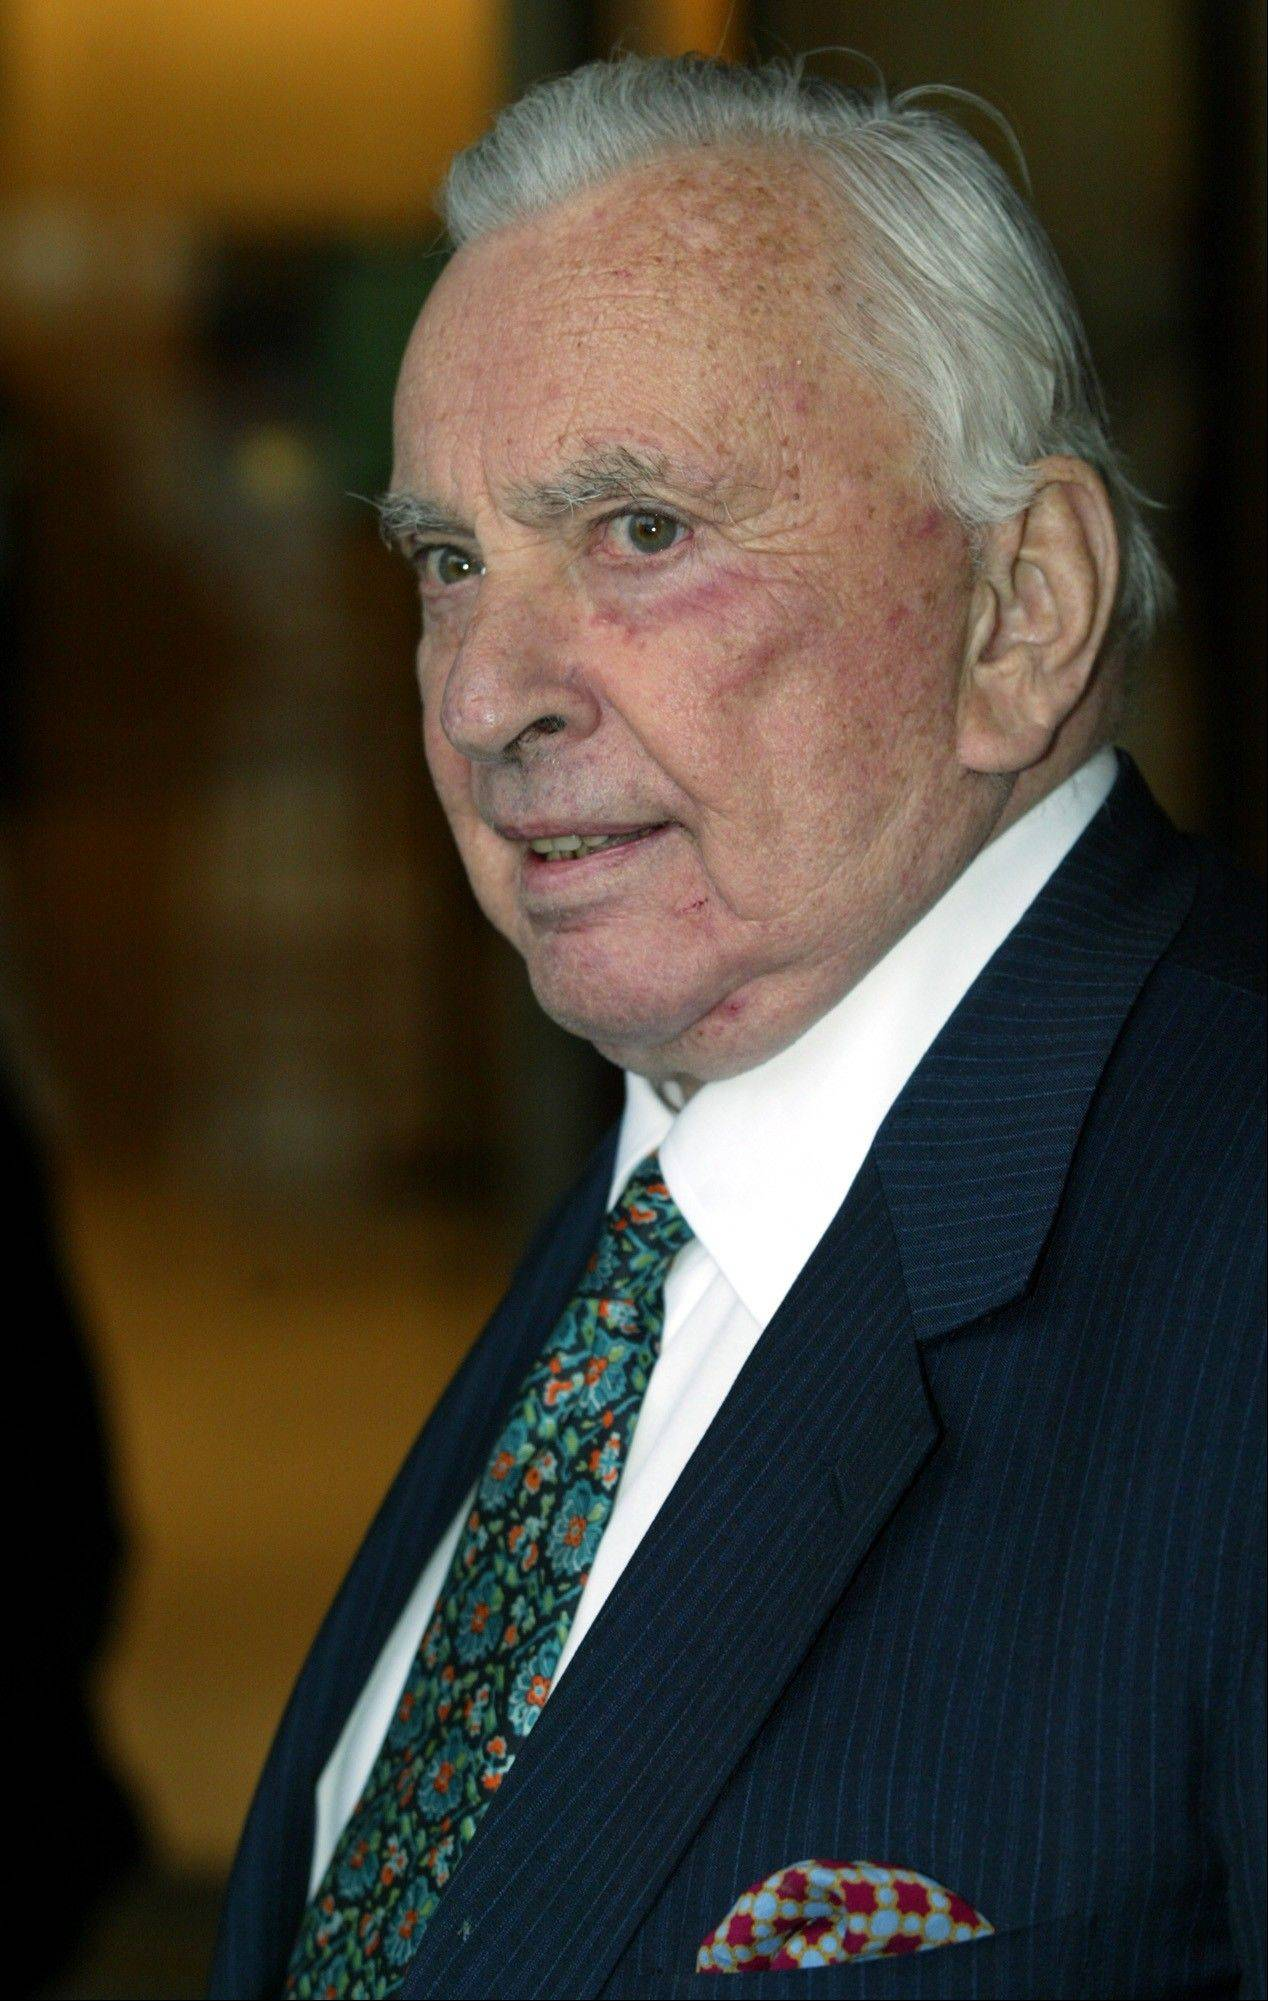 Author Gore Vidal, the author, playwright, politician and commentator whose novels, essays, plays and opinions were stamped by his immodest wit and unconventional wisdom, died July 31 at his home in Los Angeles. He was 86.